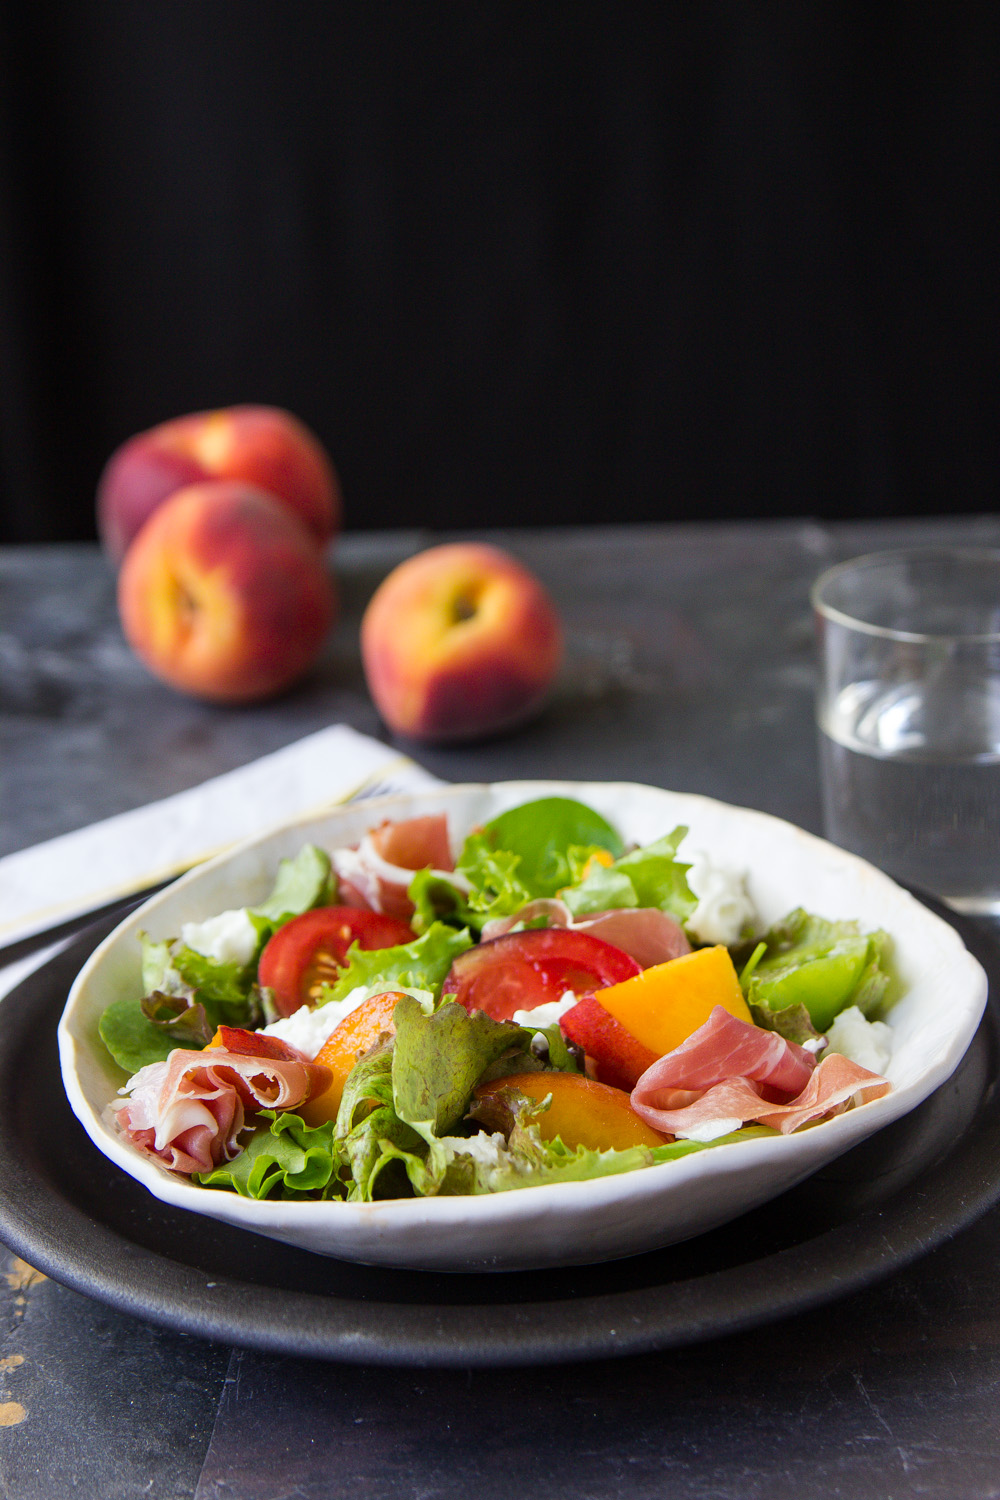 SUMMER PEACH SALAD WITH LEMON BASIL DRESSING